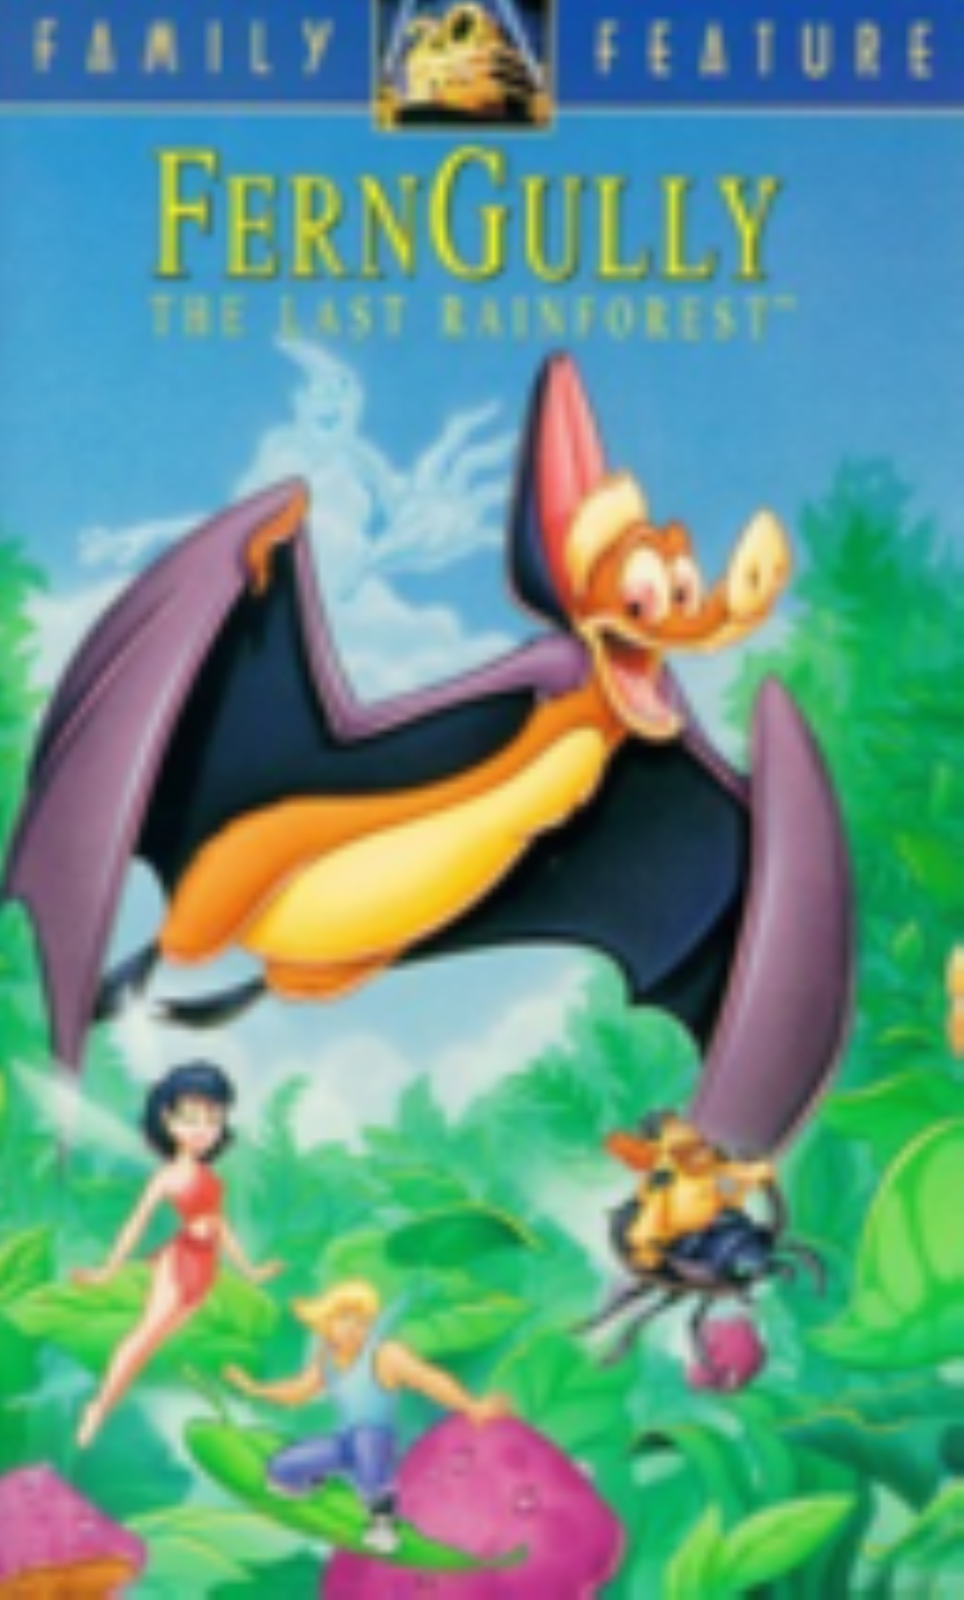 FernGully - The Last Rainforest Vhs